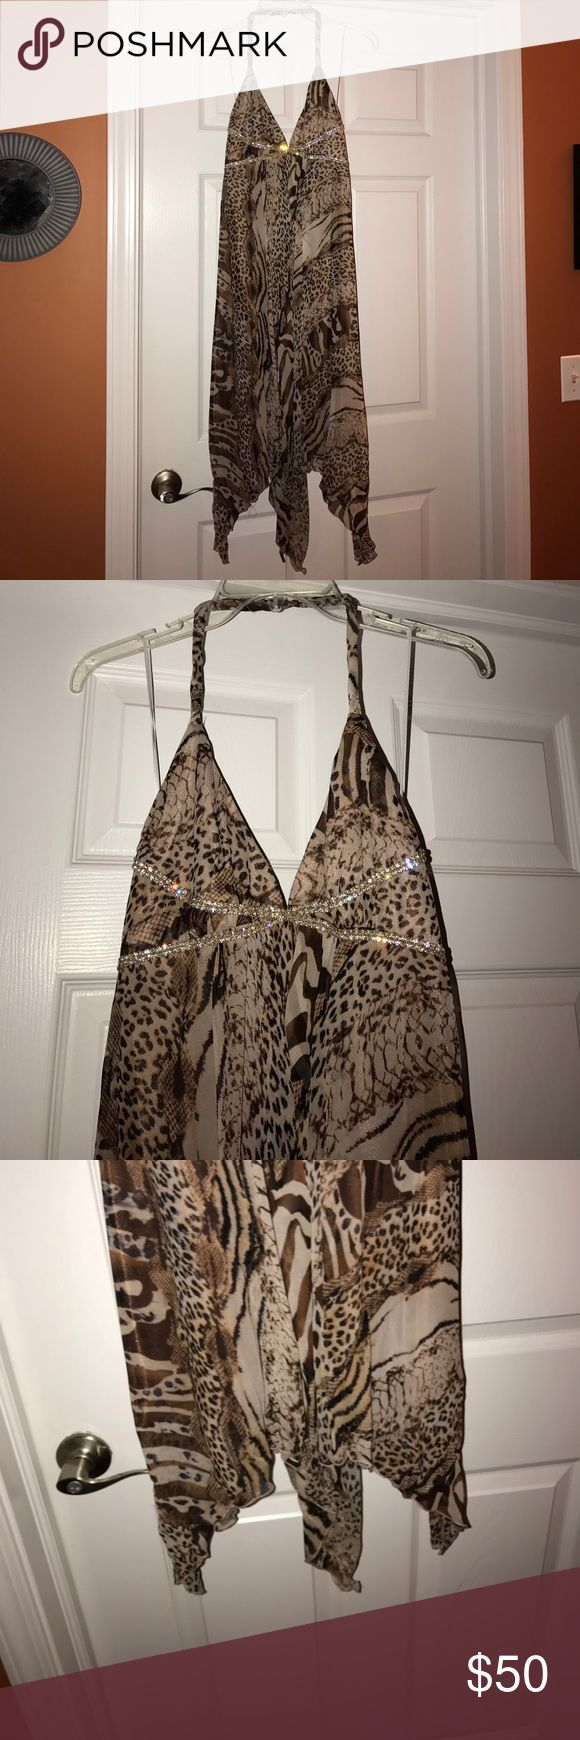 ABS Allen Shwartz Animal print Size 6 dress Size 6 ABS Allen Shwartz animal print mid length dress. Dress is beautiful and looks gorgeous on. Worn once so in very good condition. The pictures don't show it but the dress is dressy, to be worn to something like a night out or as a wedding guest dress ABS Allen Schwartz Dresses Midi